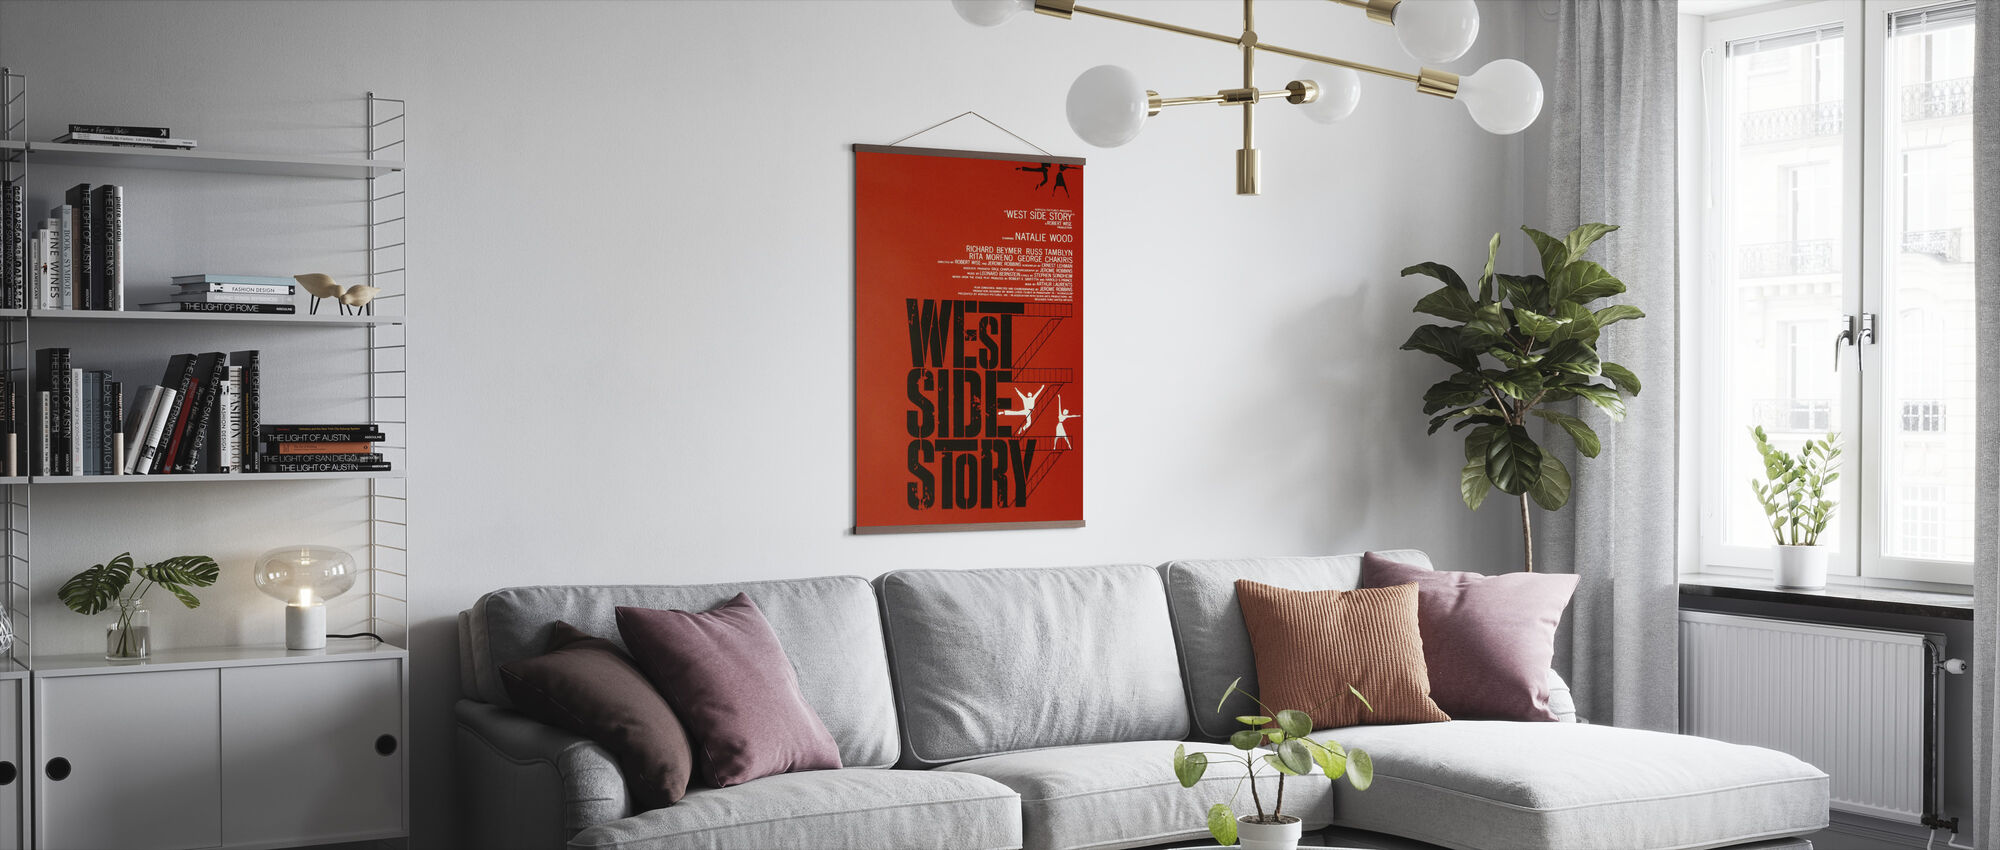 West Side Story - Poster - Living Room